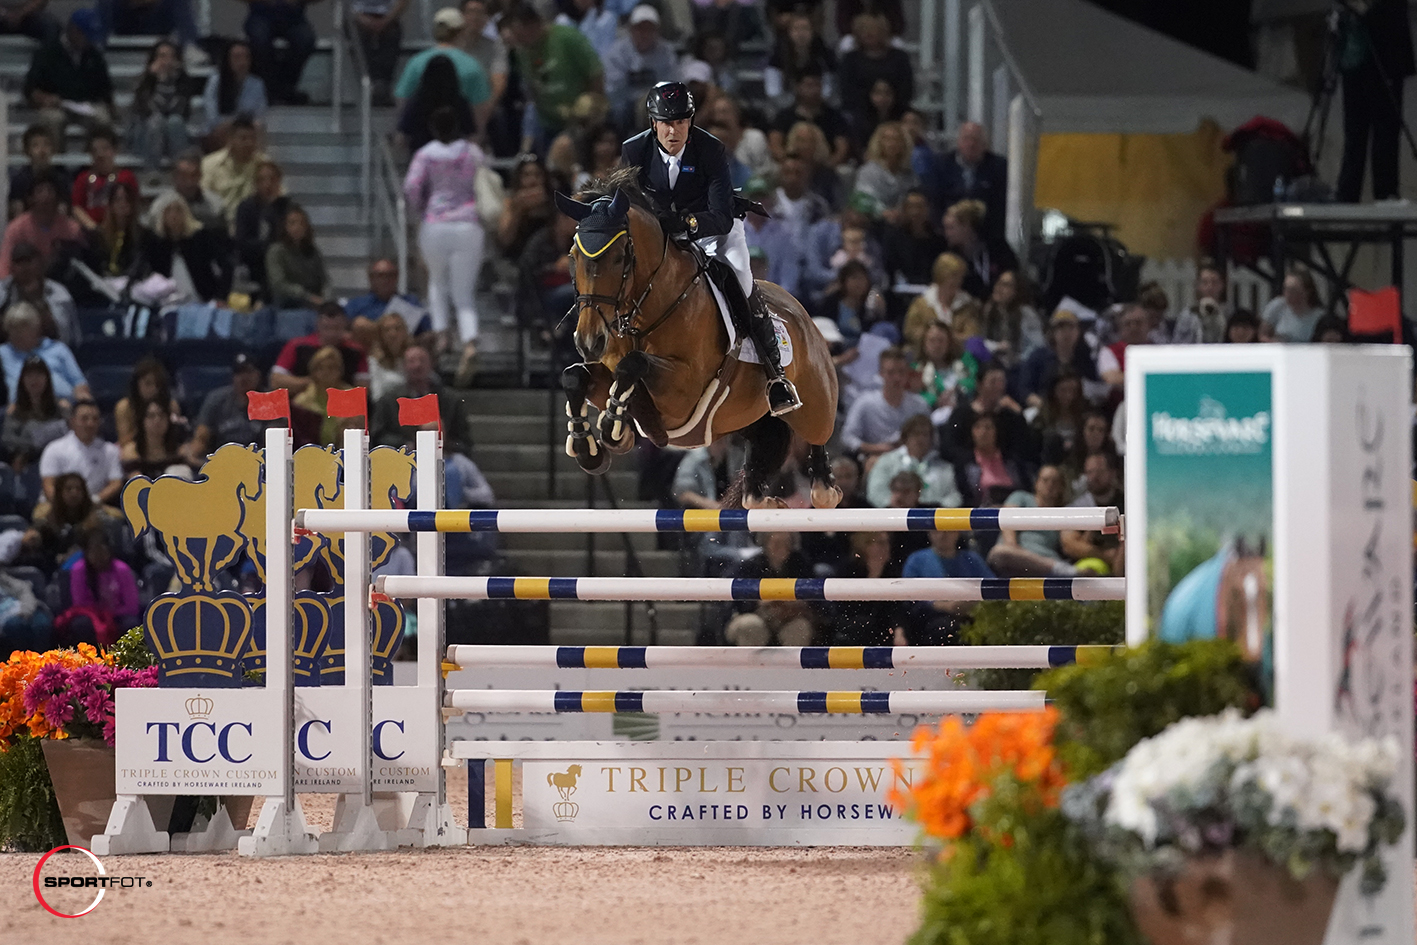 Thumbnail for Ian Millar and Dixson Second in $132,000 Horseware Ireland Grand Prix CSI 3*